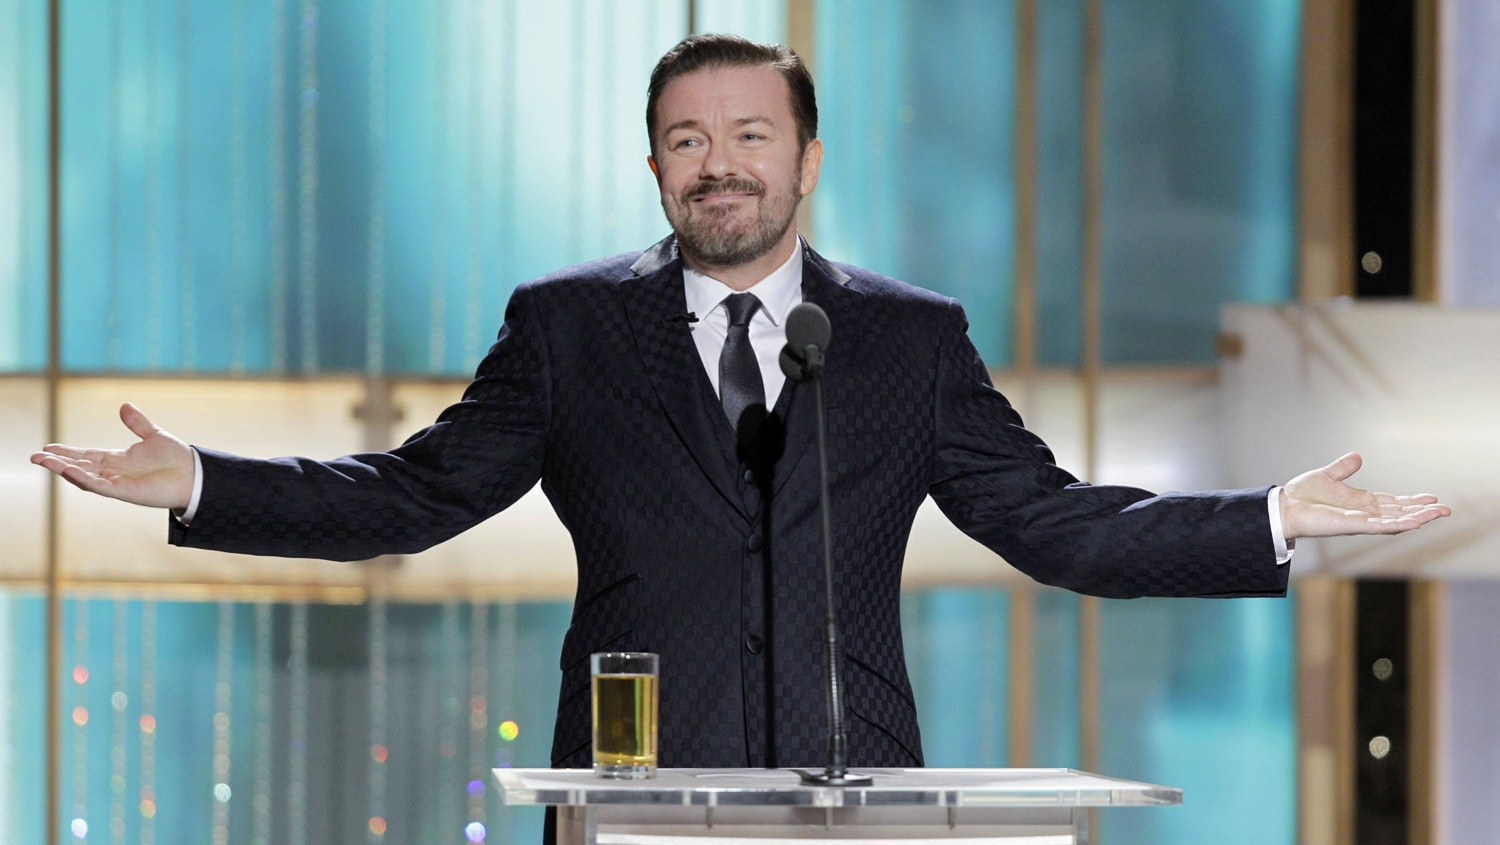 La notte in cui Ricky Gervais insultò mezza Hollywood